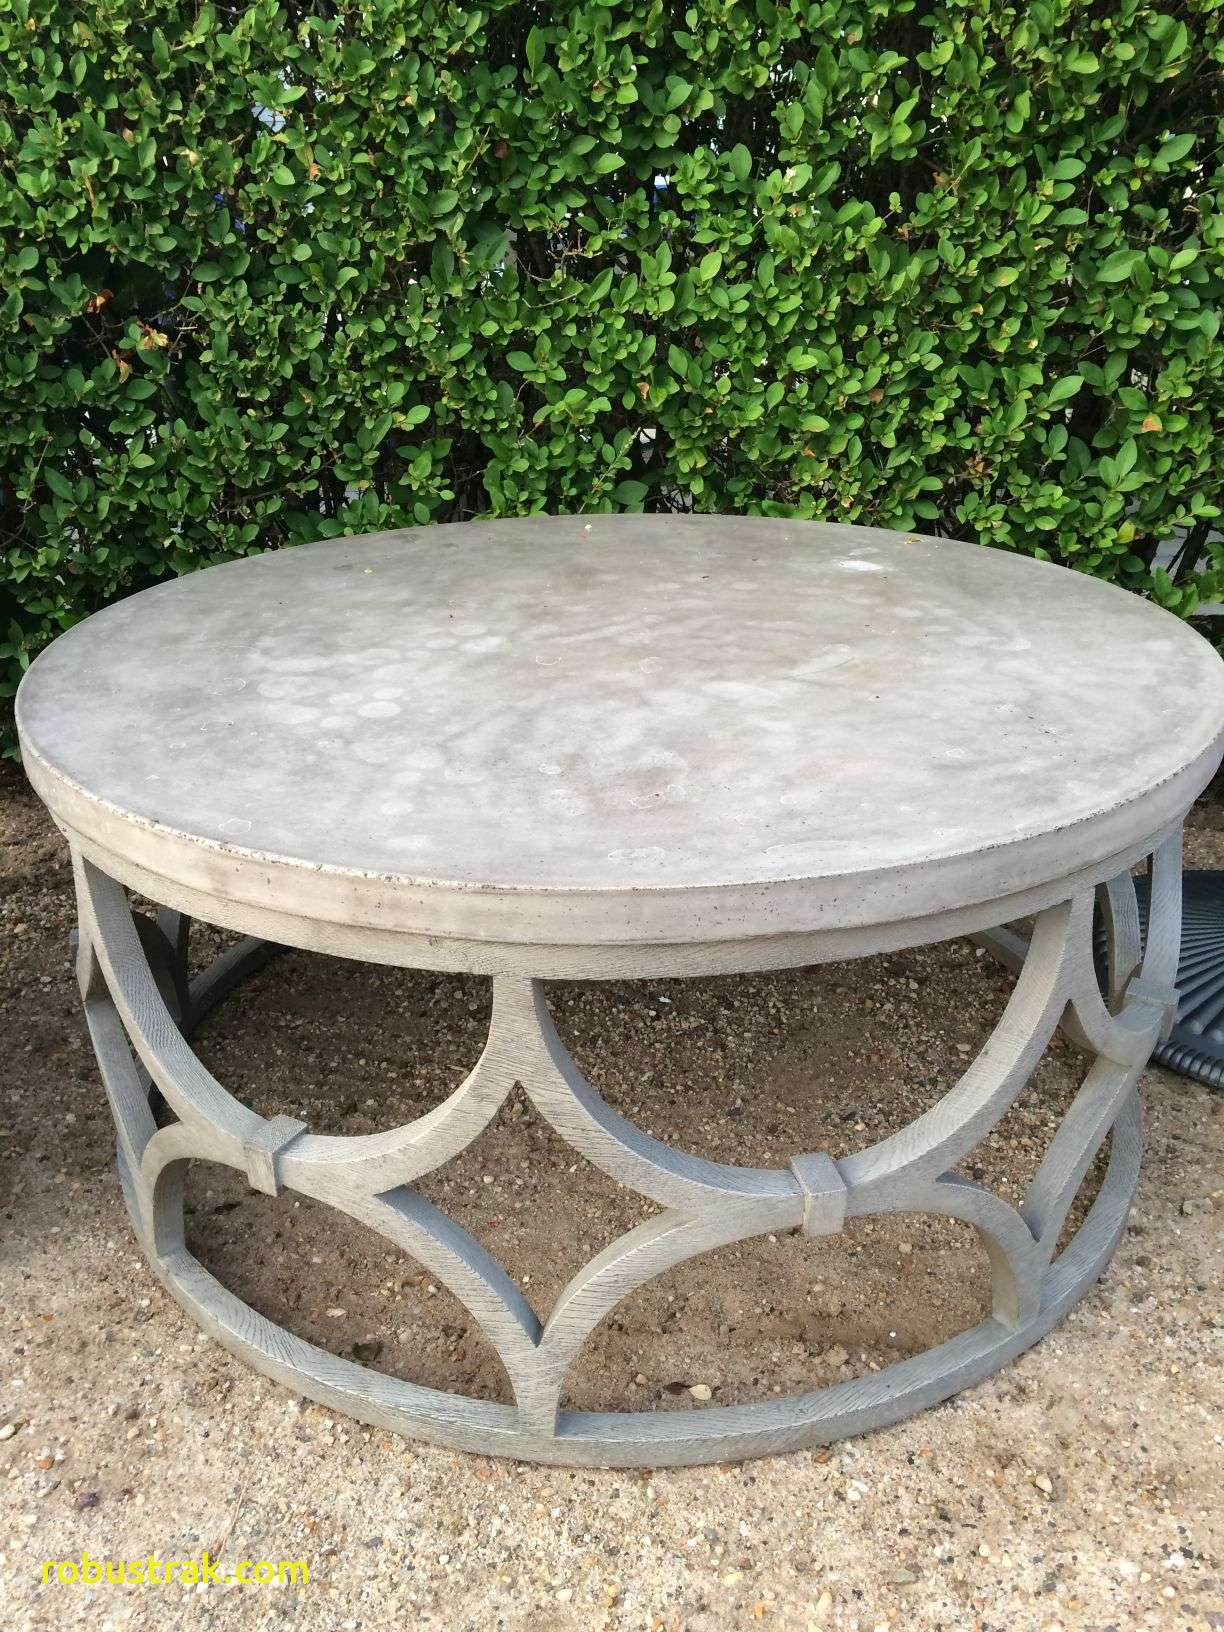 elegant plastic coffee table home design ideas luxury rowan small outdoor concrete round mecox gardens side end tables tall kitchen chairs wooden farmhouse pine nightstands